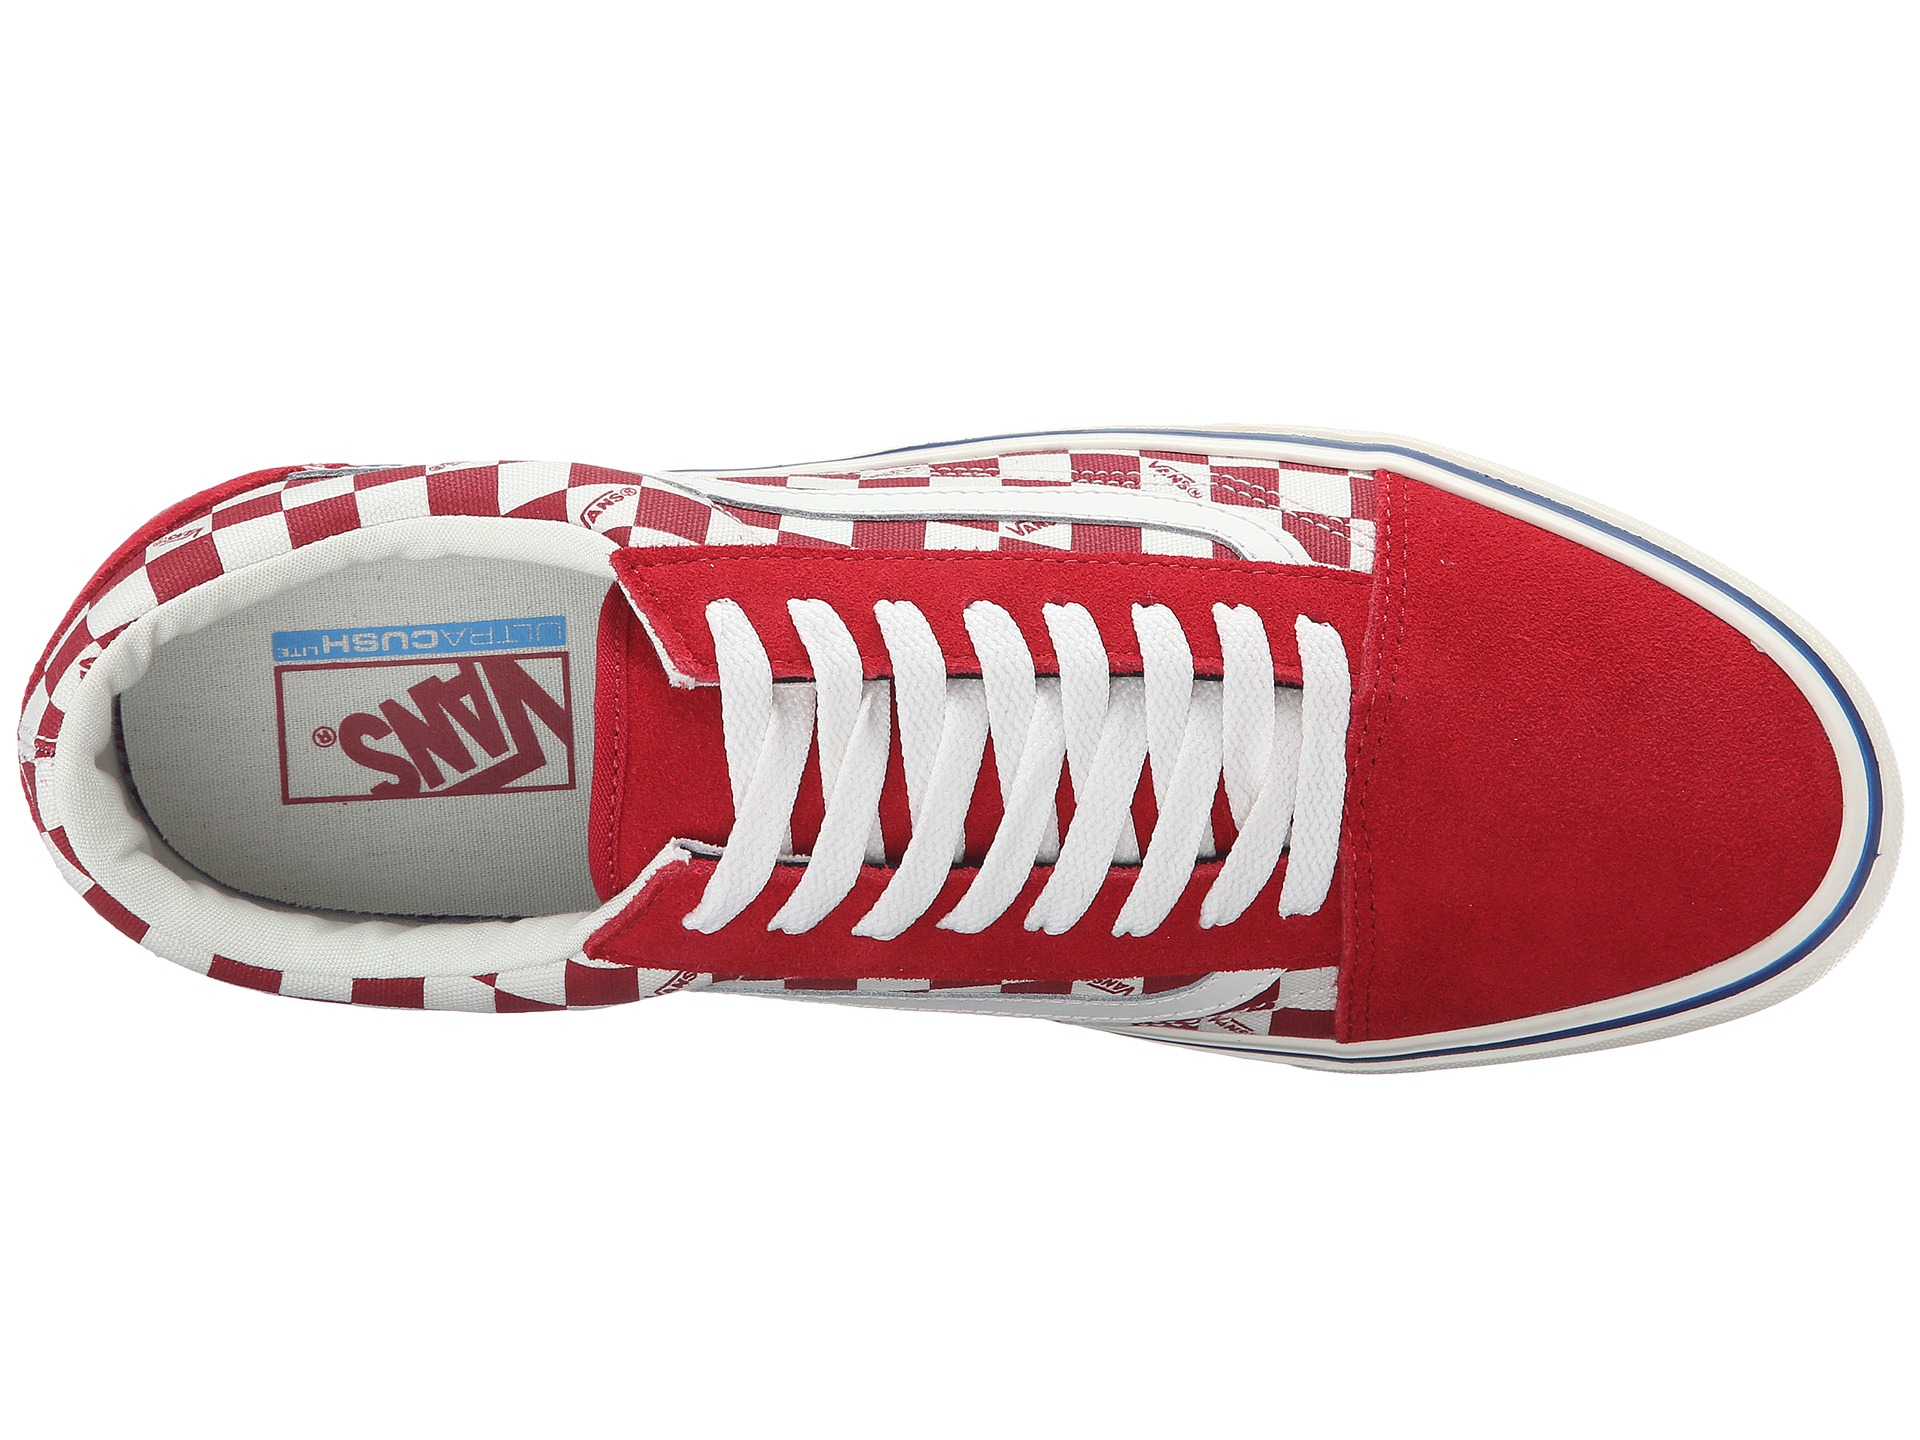 491ad13621 Gallery. Previously sold at  Zappos · Men s Vans Old Skool ...